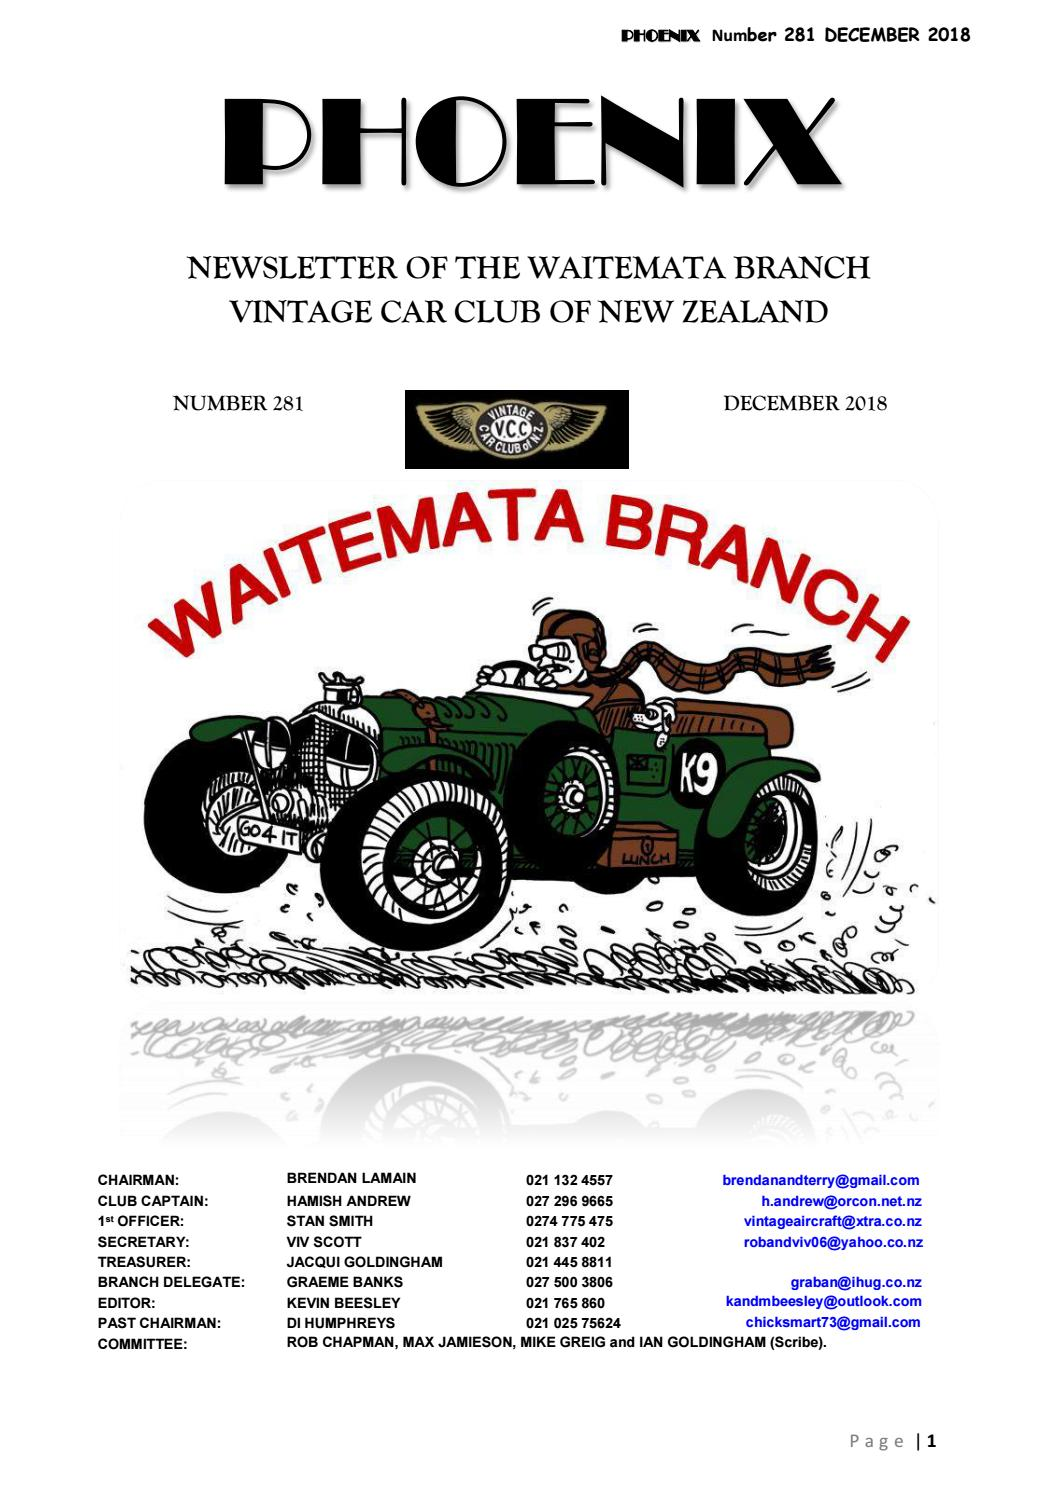 Waitemata VCC December 2018 by Vintage Car Club of New